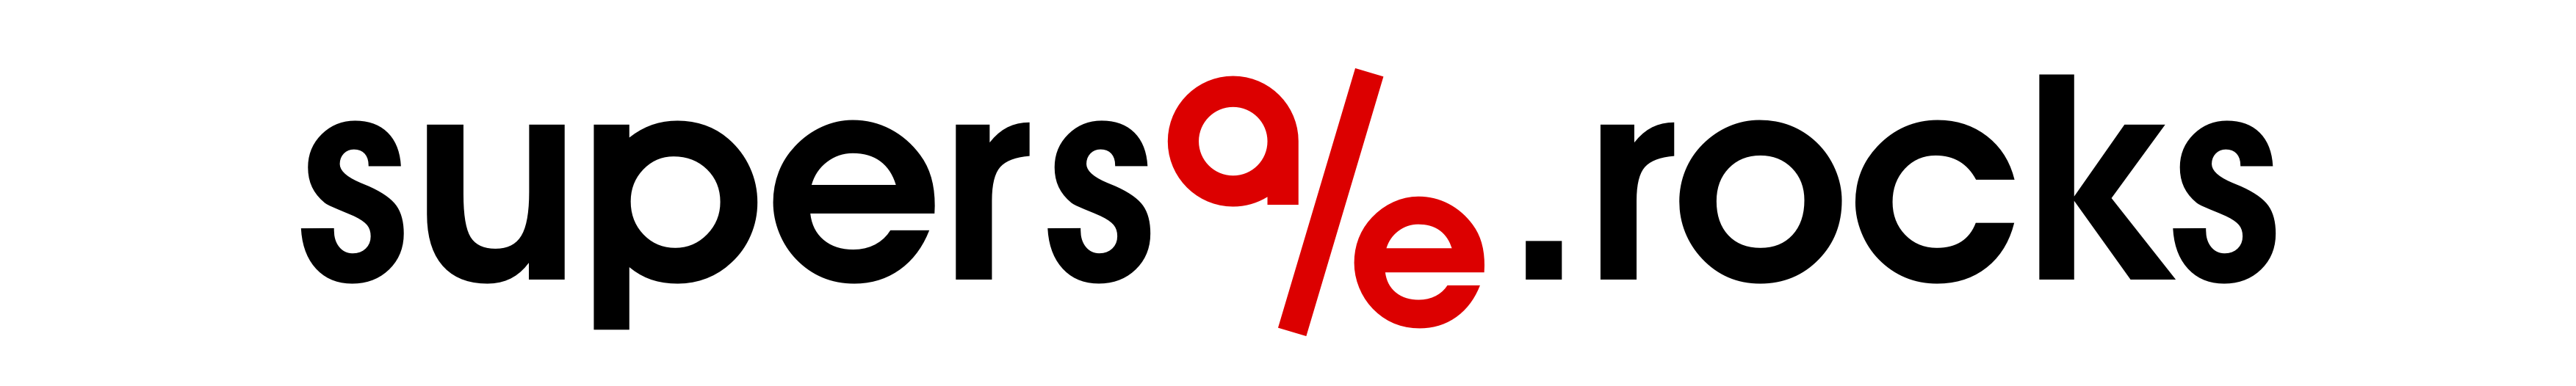 Supersale Rocks Salzburg Logo